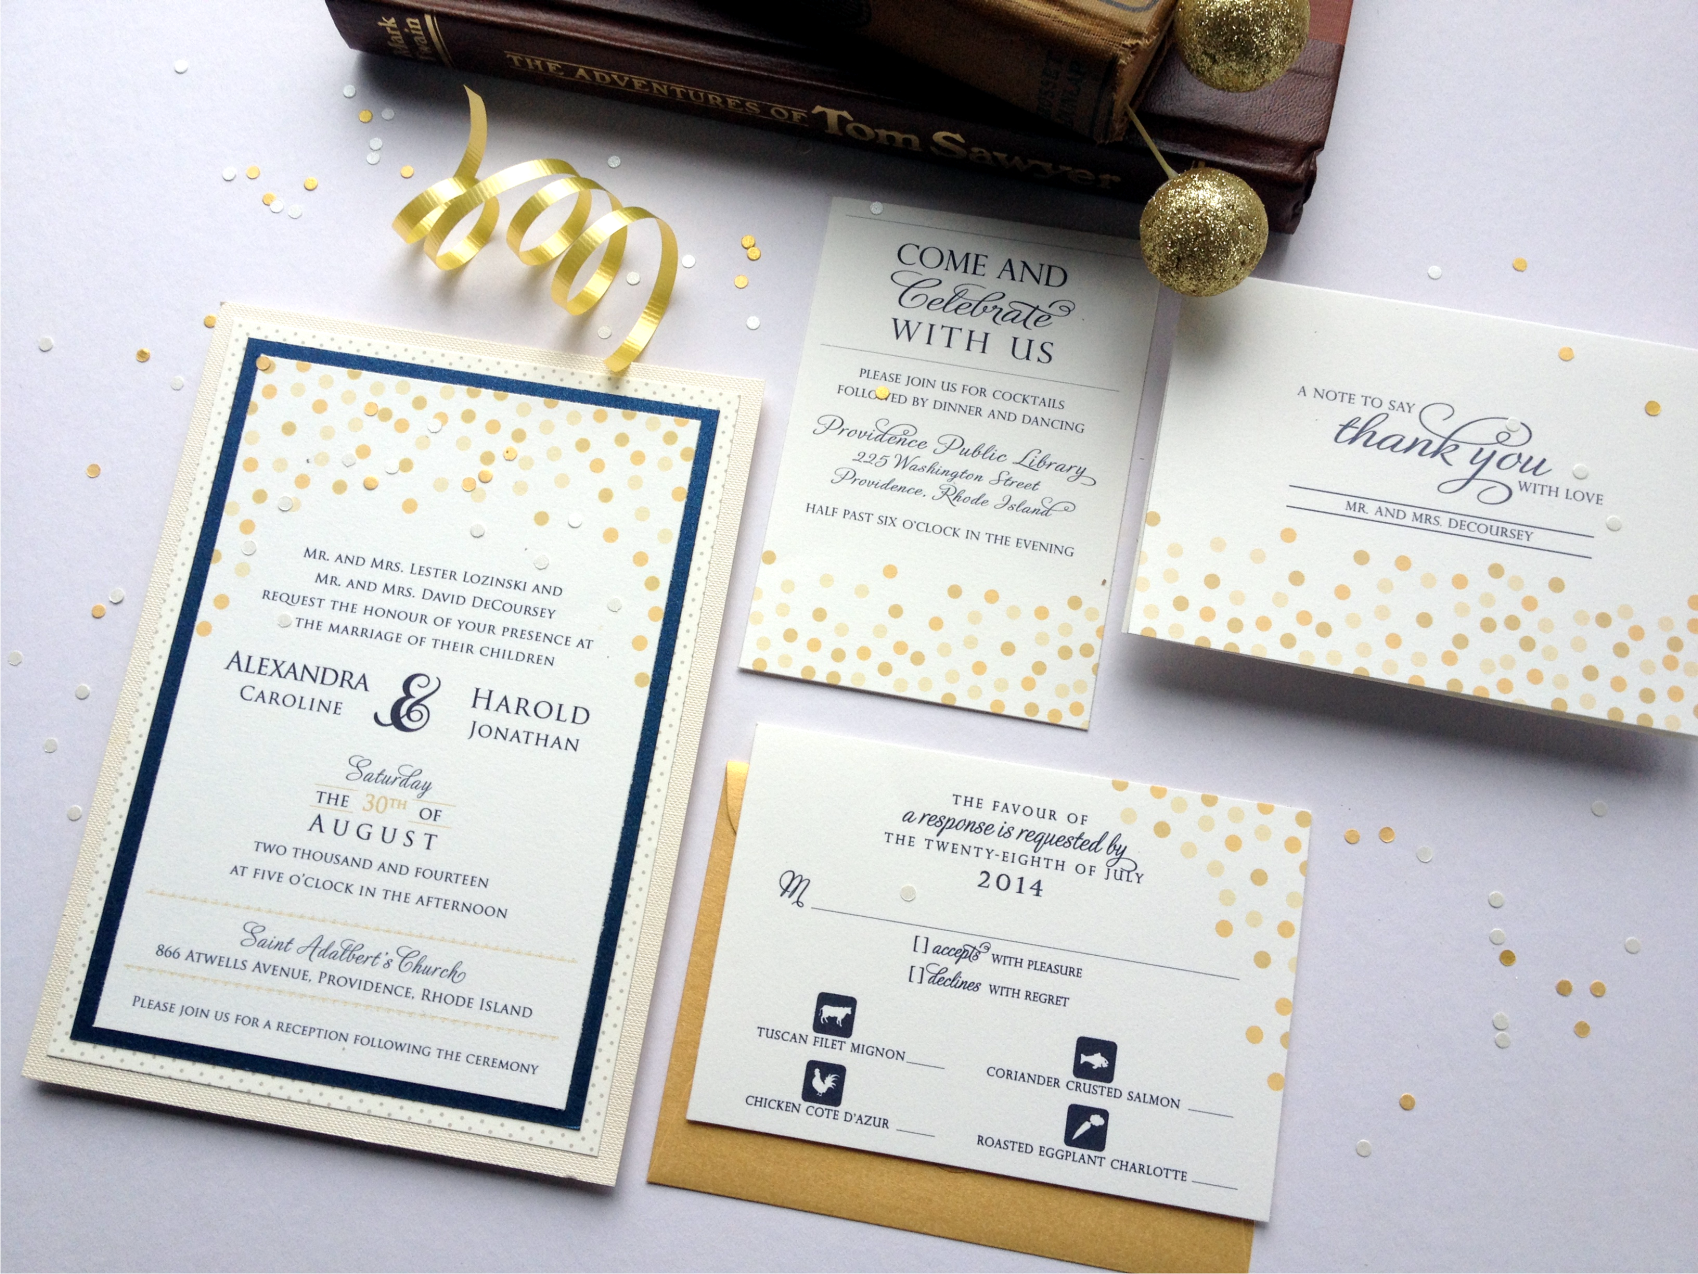 Invitations + Paper in Providence, RI - The Knot